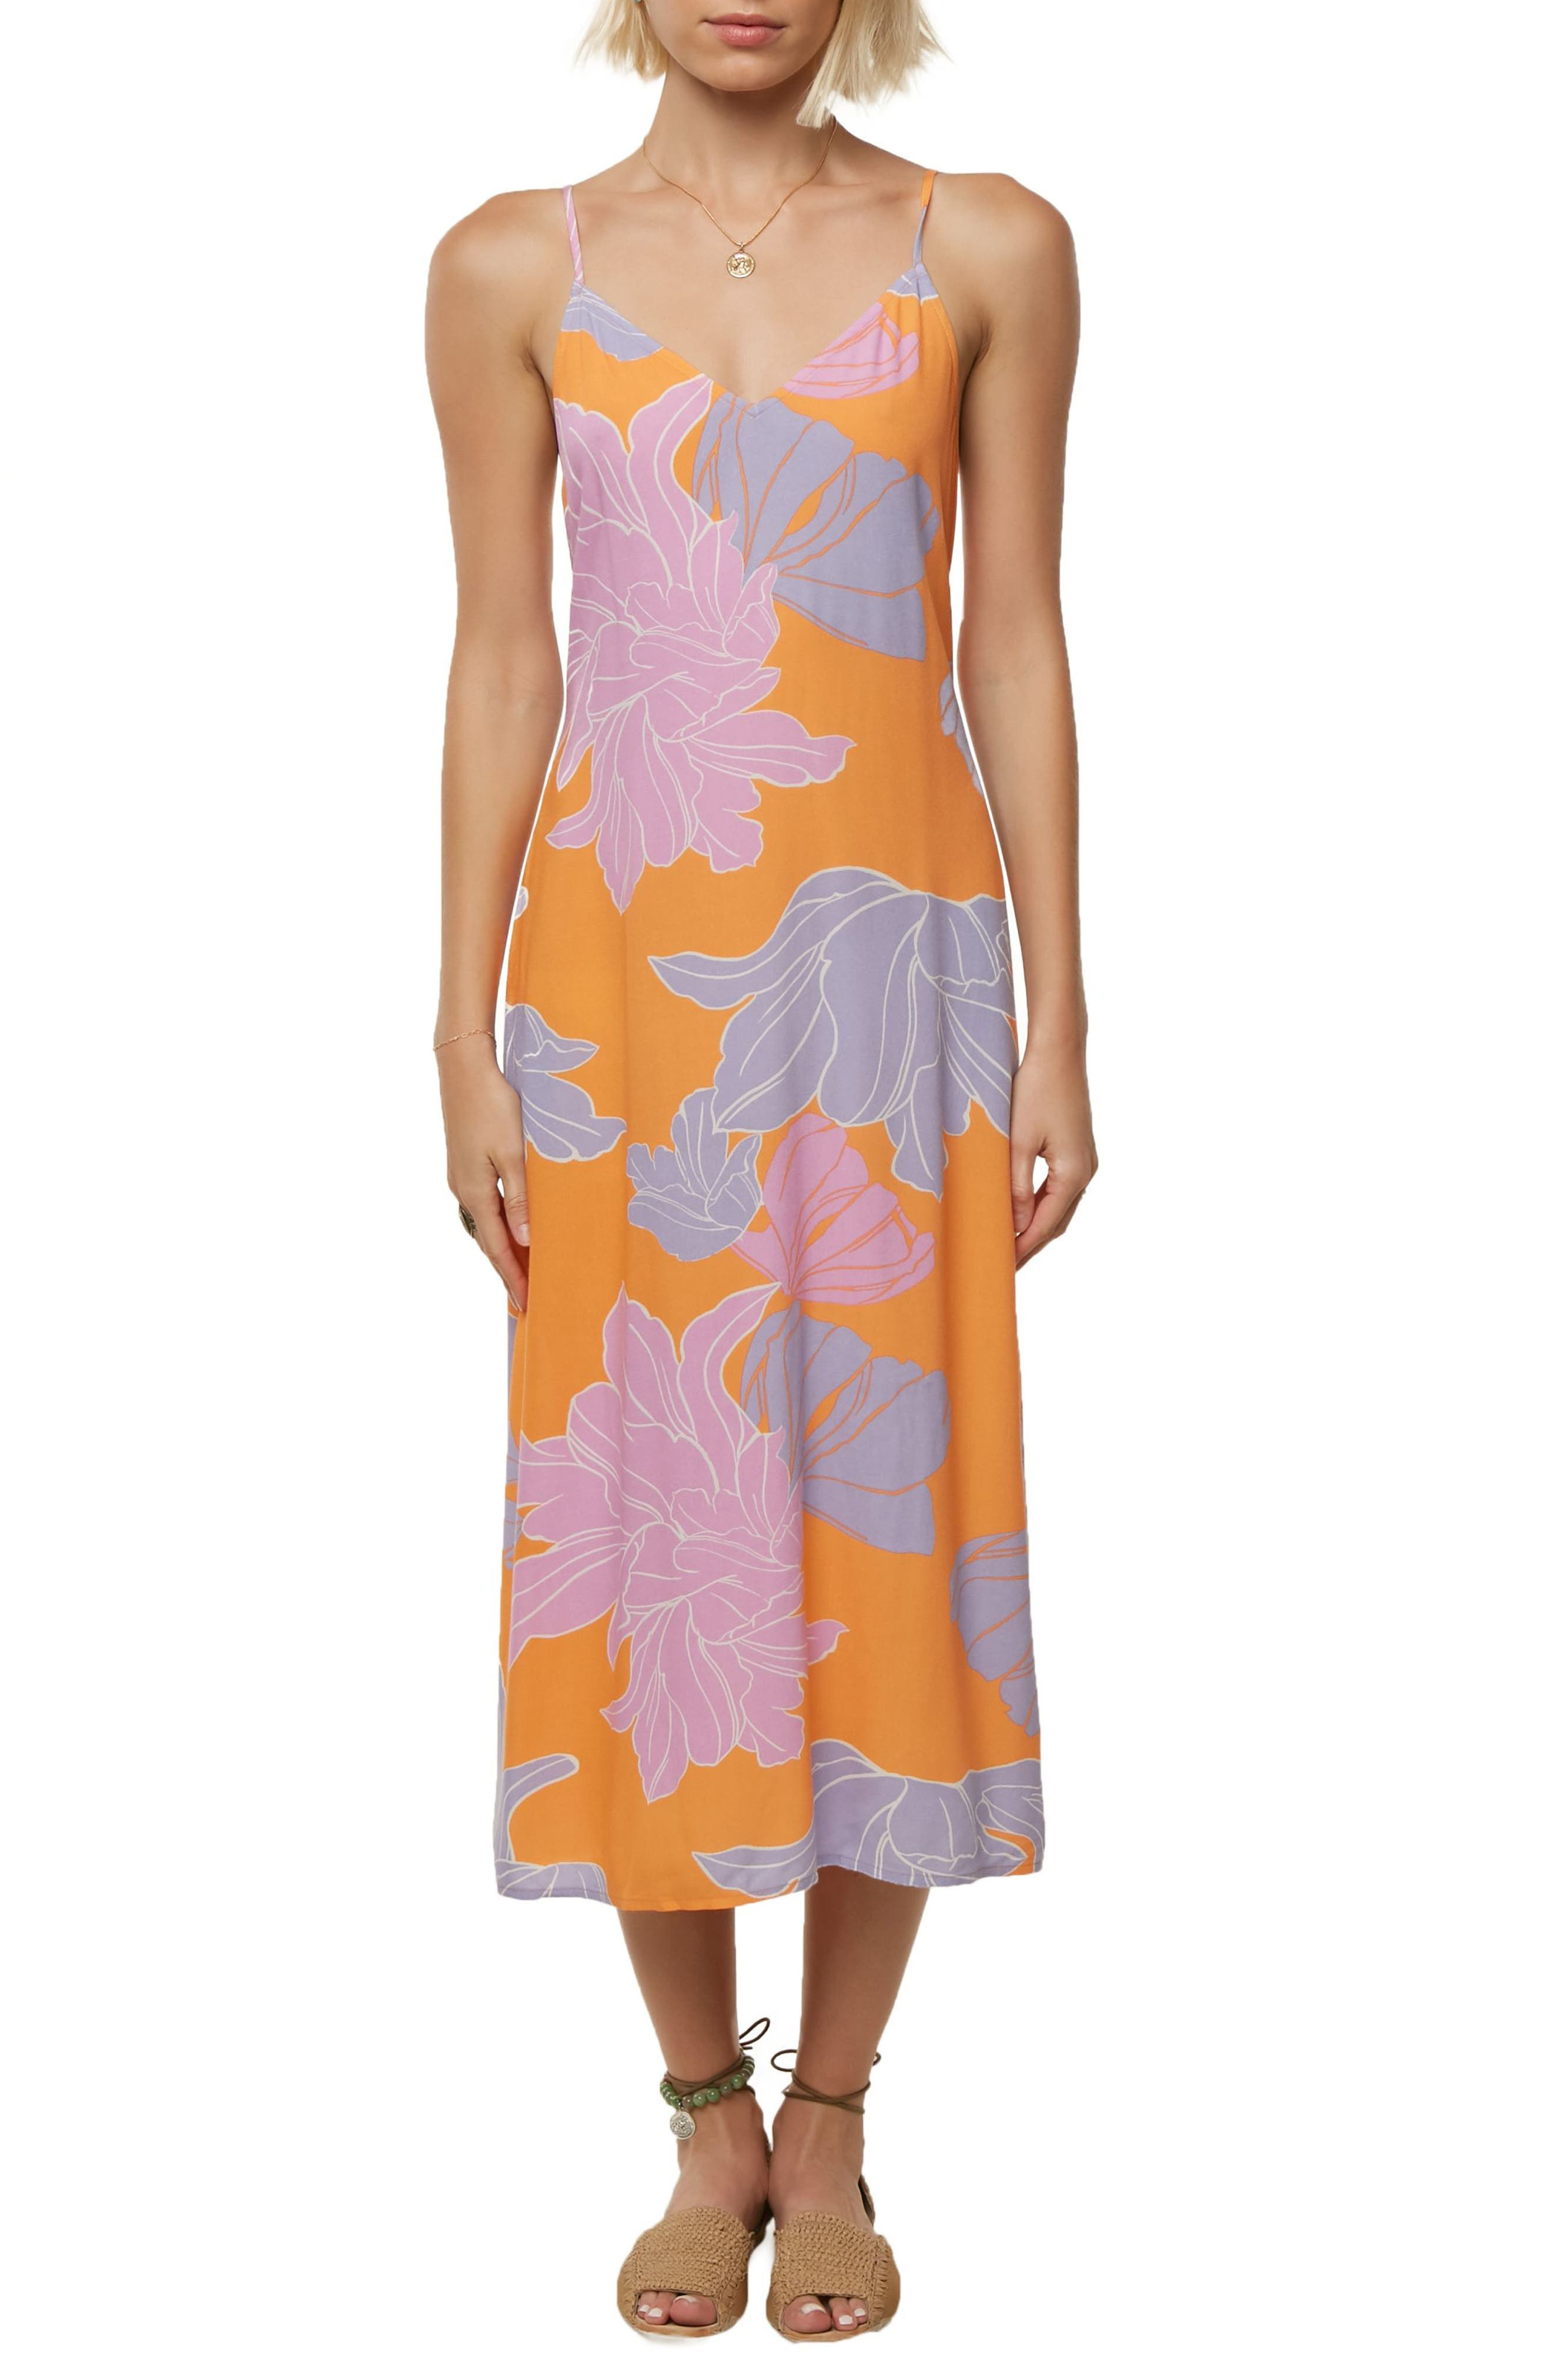 Santa Rosa Cover-Up Midi Dress,                             Main thumbnail 1, color,                             810